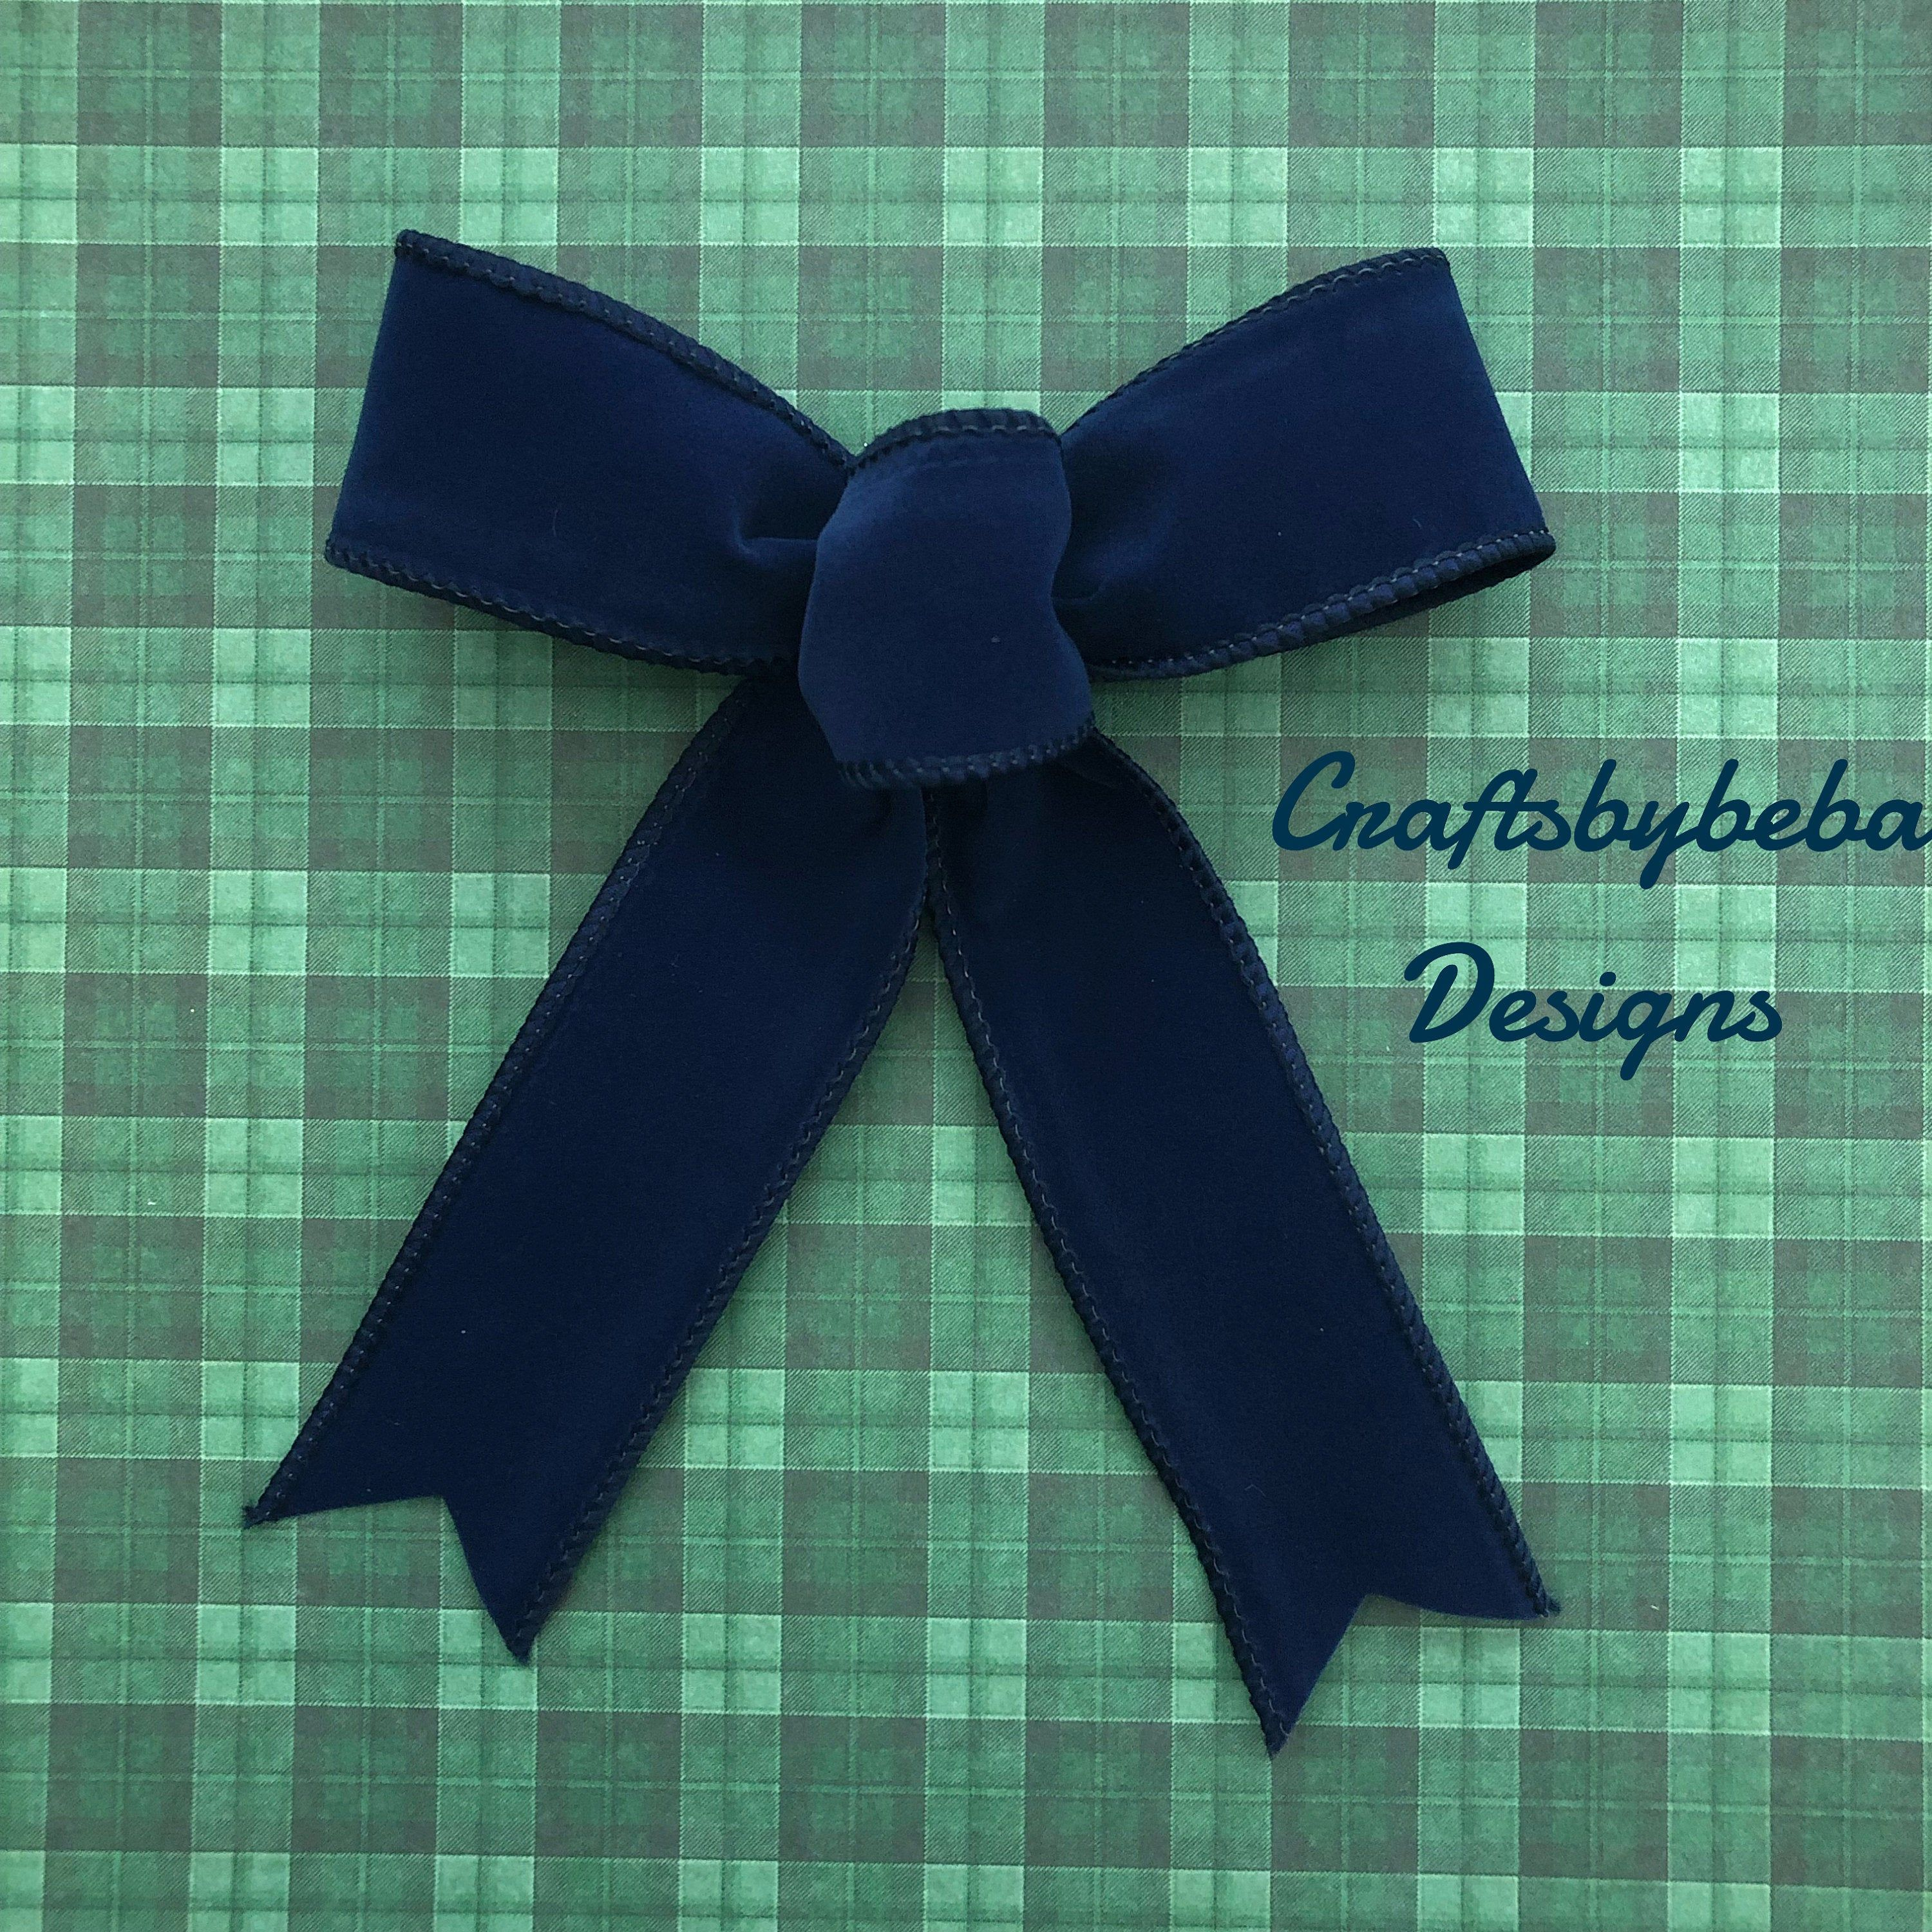 Christmas Blue Decorative Bows / Set of 12 Bows / Xmas Navy Blue Bows / Navy Blue Velvet Decorative Bows / Christmas Tree Bows / Velvet Bows #sunflowerchristmastree